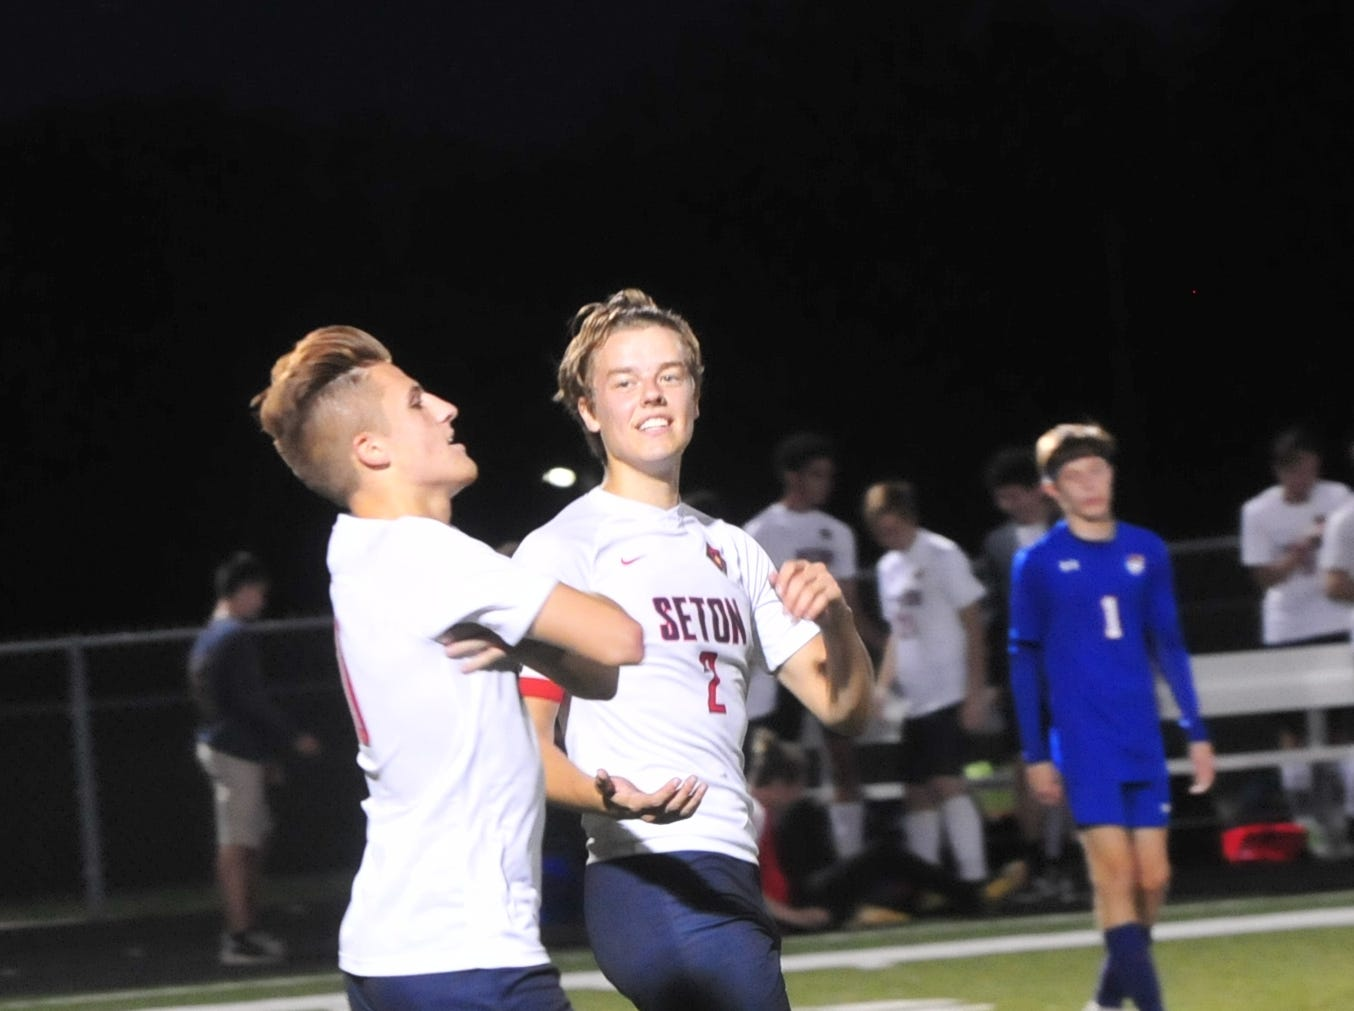 Sam Brenneke, left, and Adam Deitsch of Seton Catholic celebrate a goal from Brenneke during the IHSAA Class A Sectional 42 boys soccer semifinal at Knightstown Wednesday, Oct. 3, 2018.